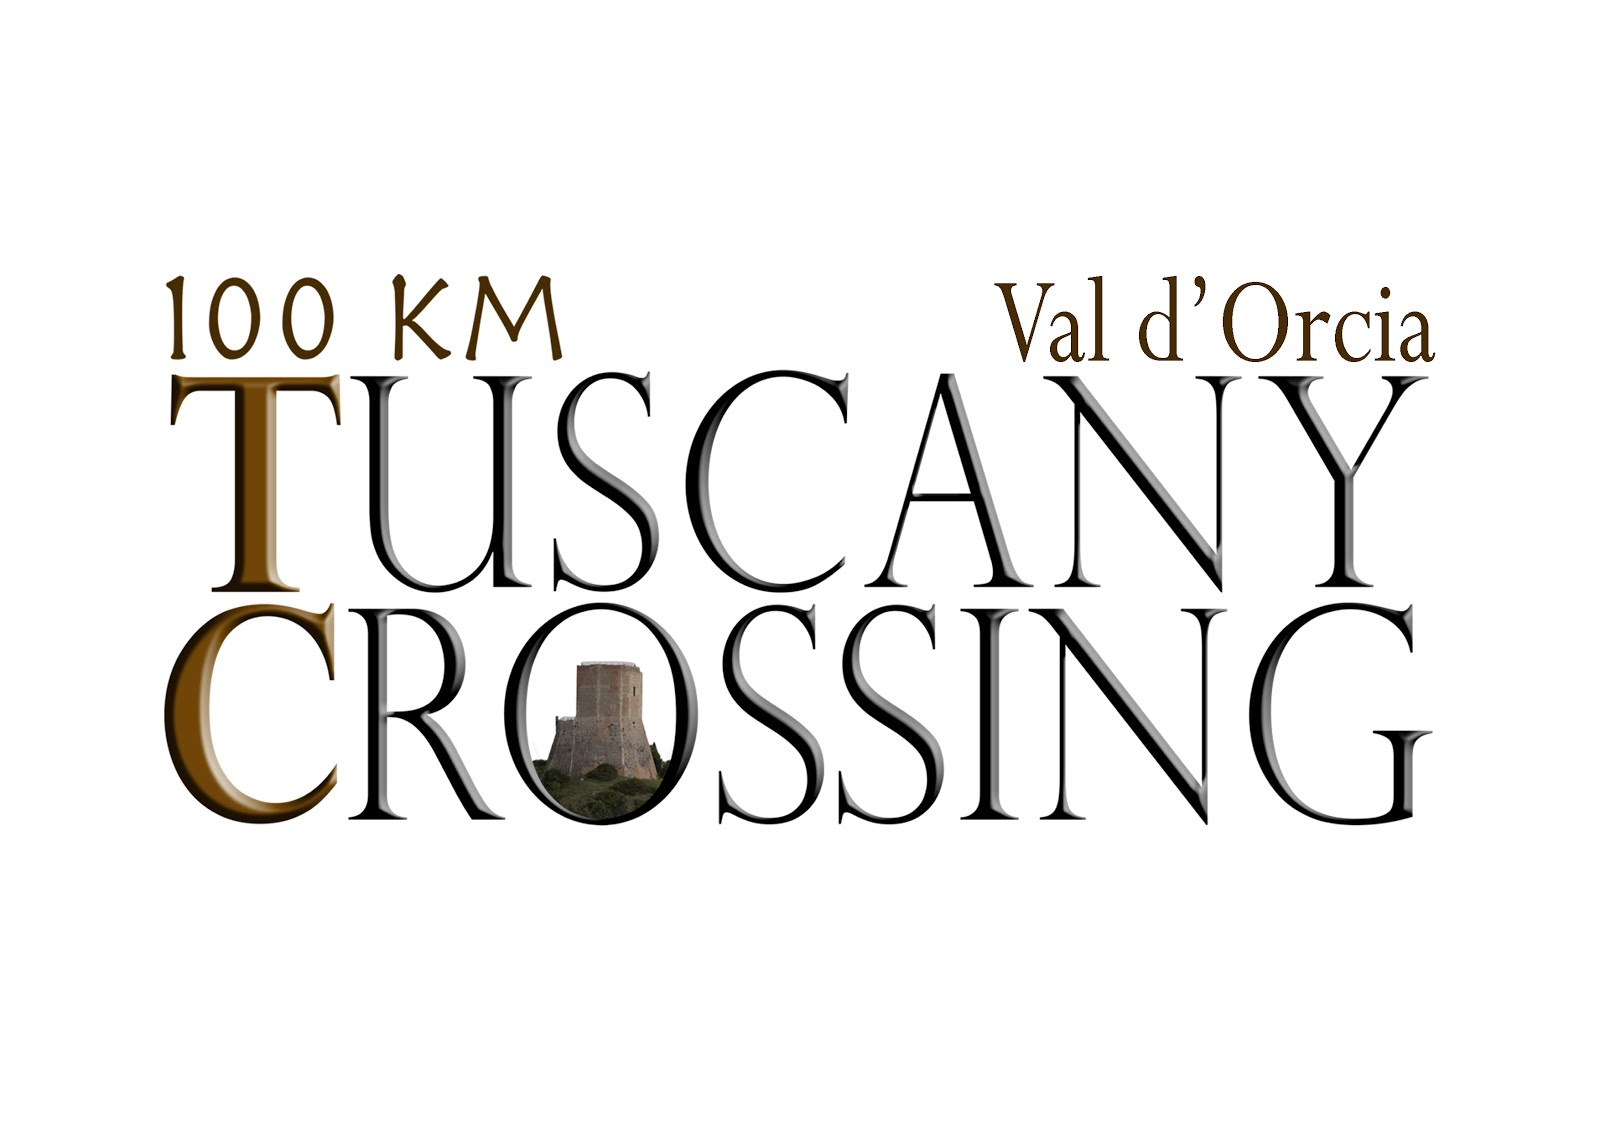 TUSCANY CROSSING